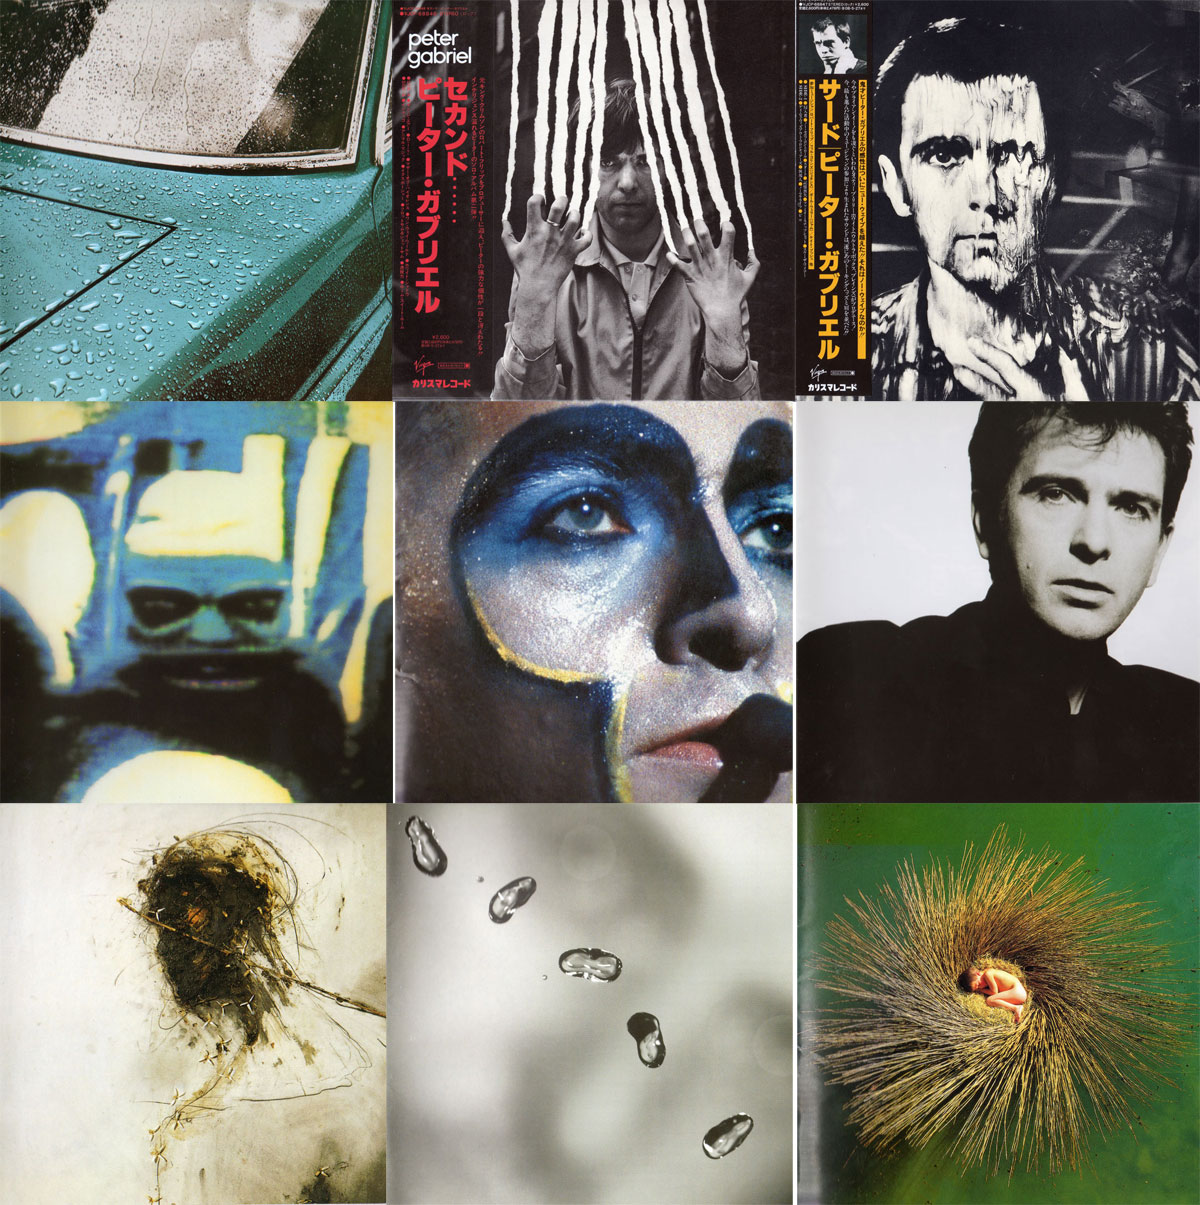 Peter Gabriel: Albums Collection (1977 - 2002) [Japanese Pressing